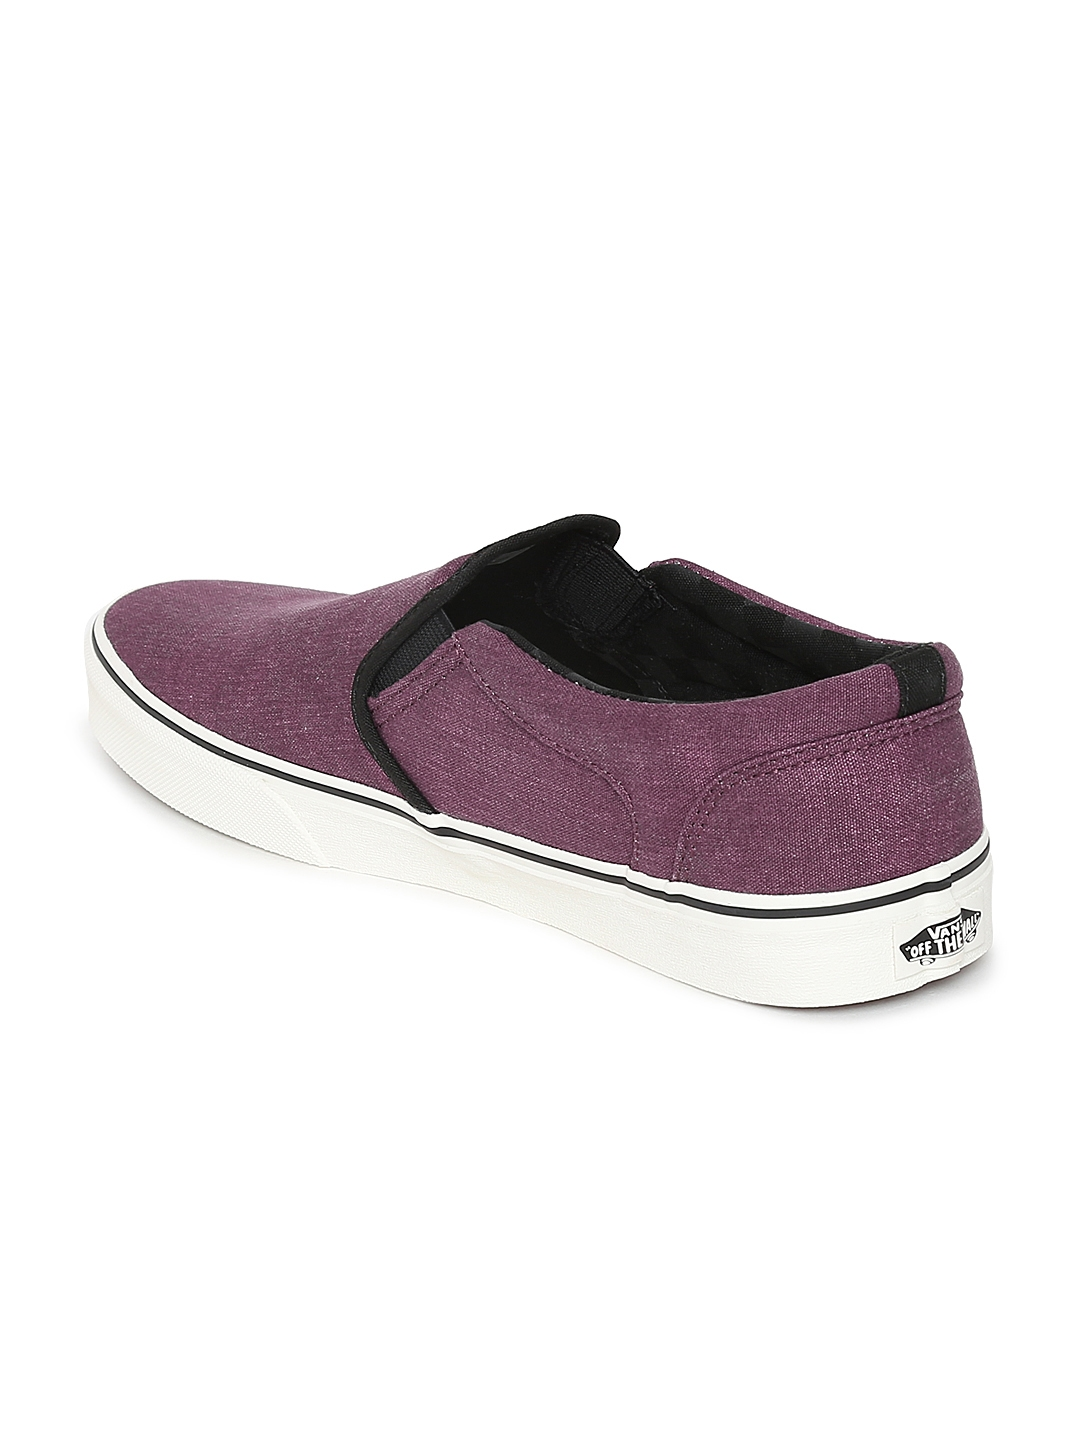 2a097748be0 Buy Vans Men Maroon Asher Slip On Sneakers - Casual Shoes for Men ...